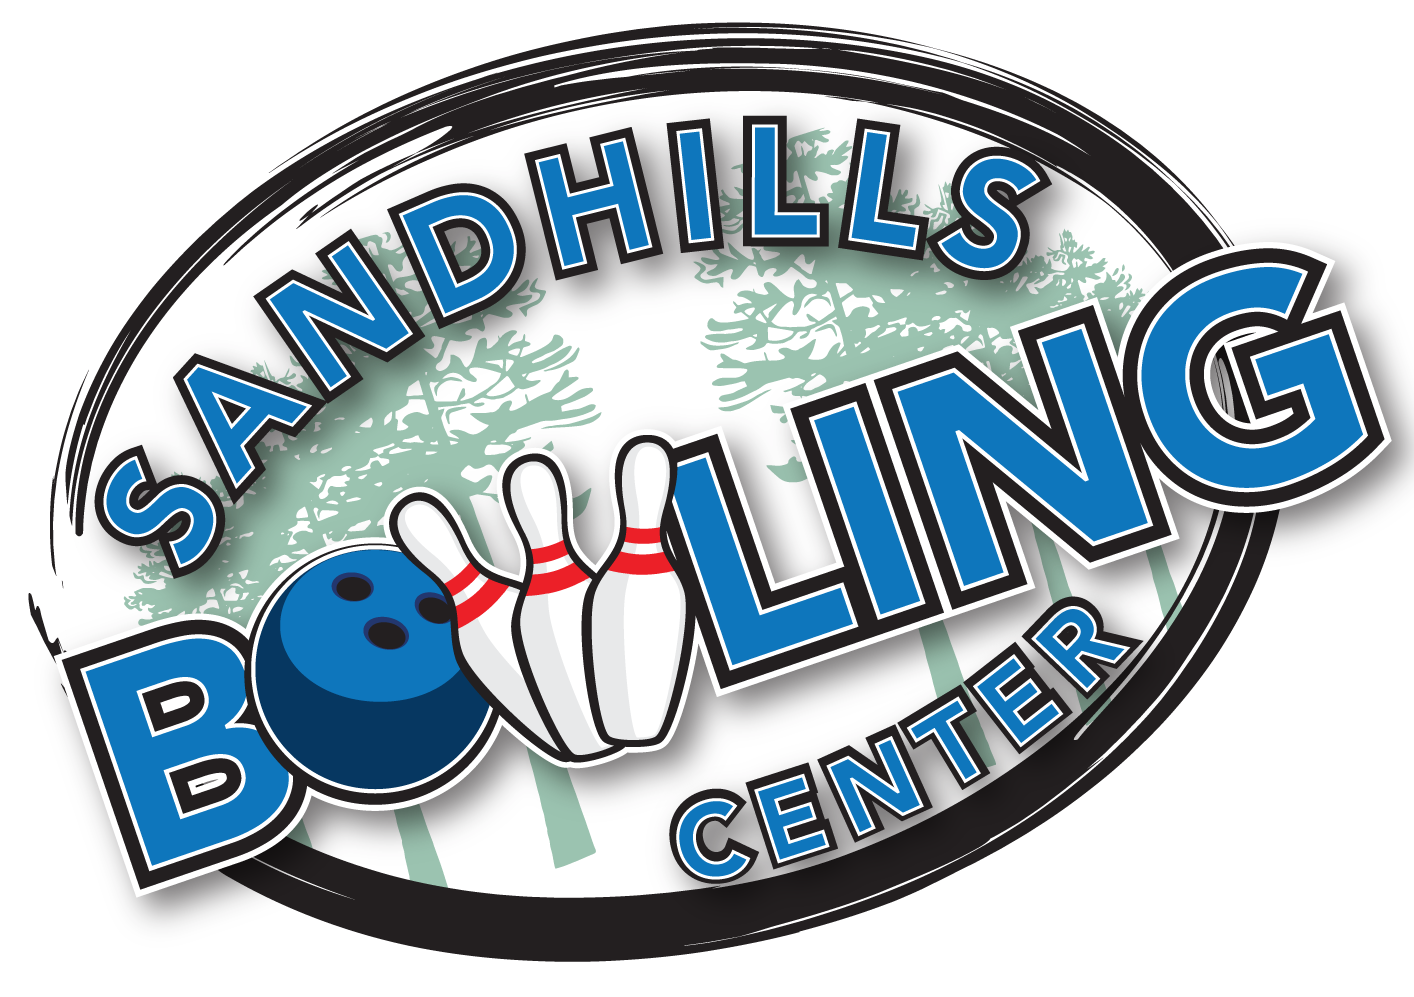 Sand Hills Bowling Center